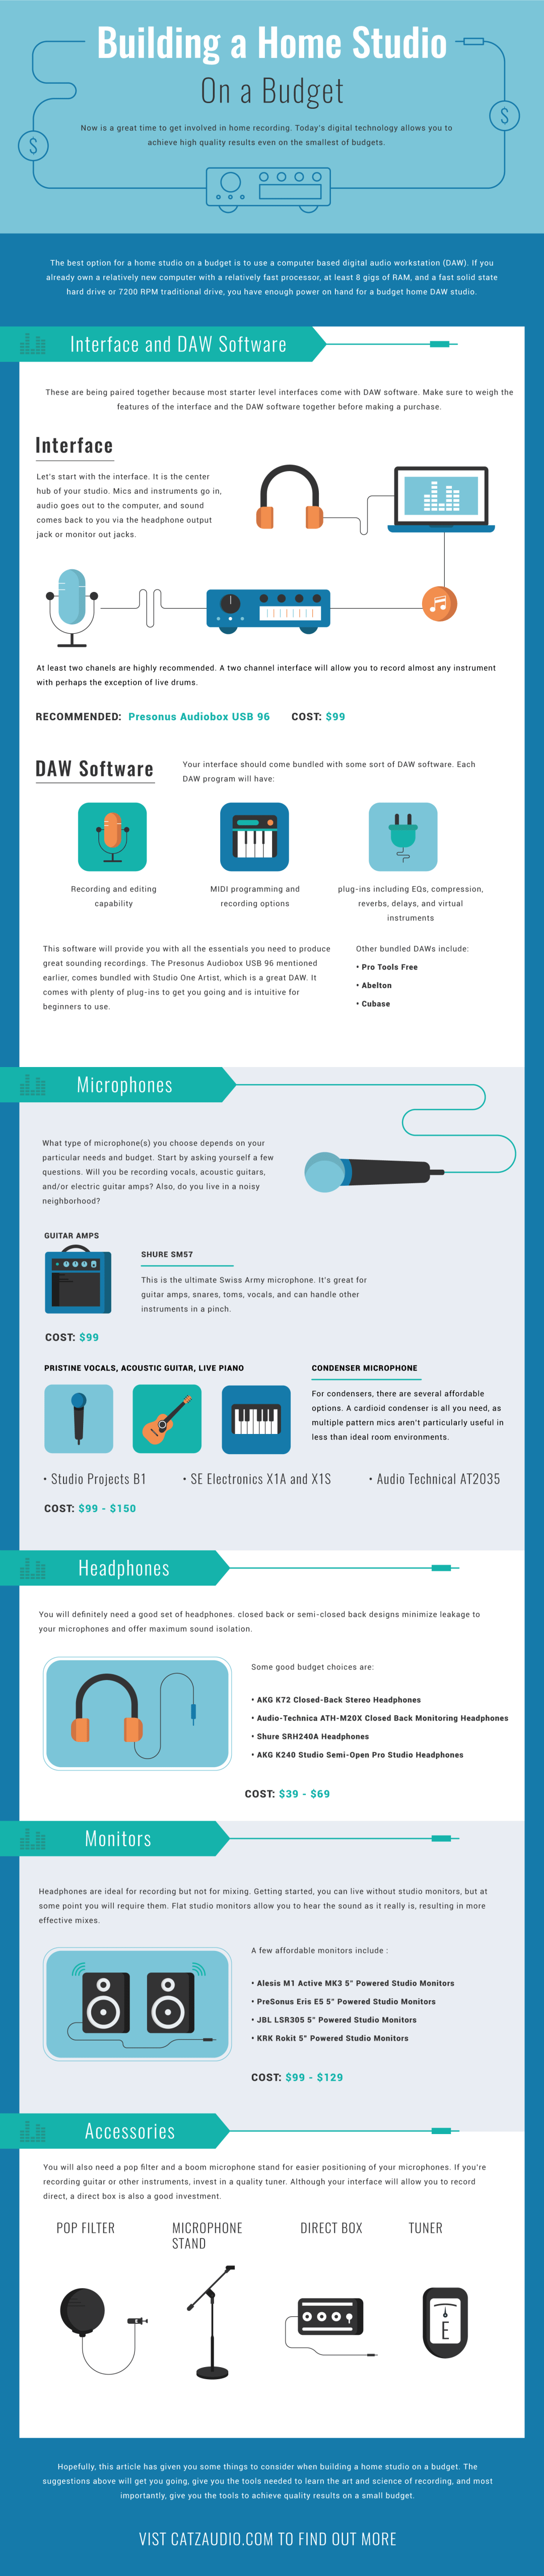 building a home studio on a budget infographic